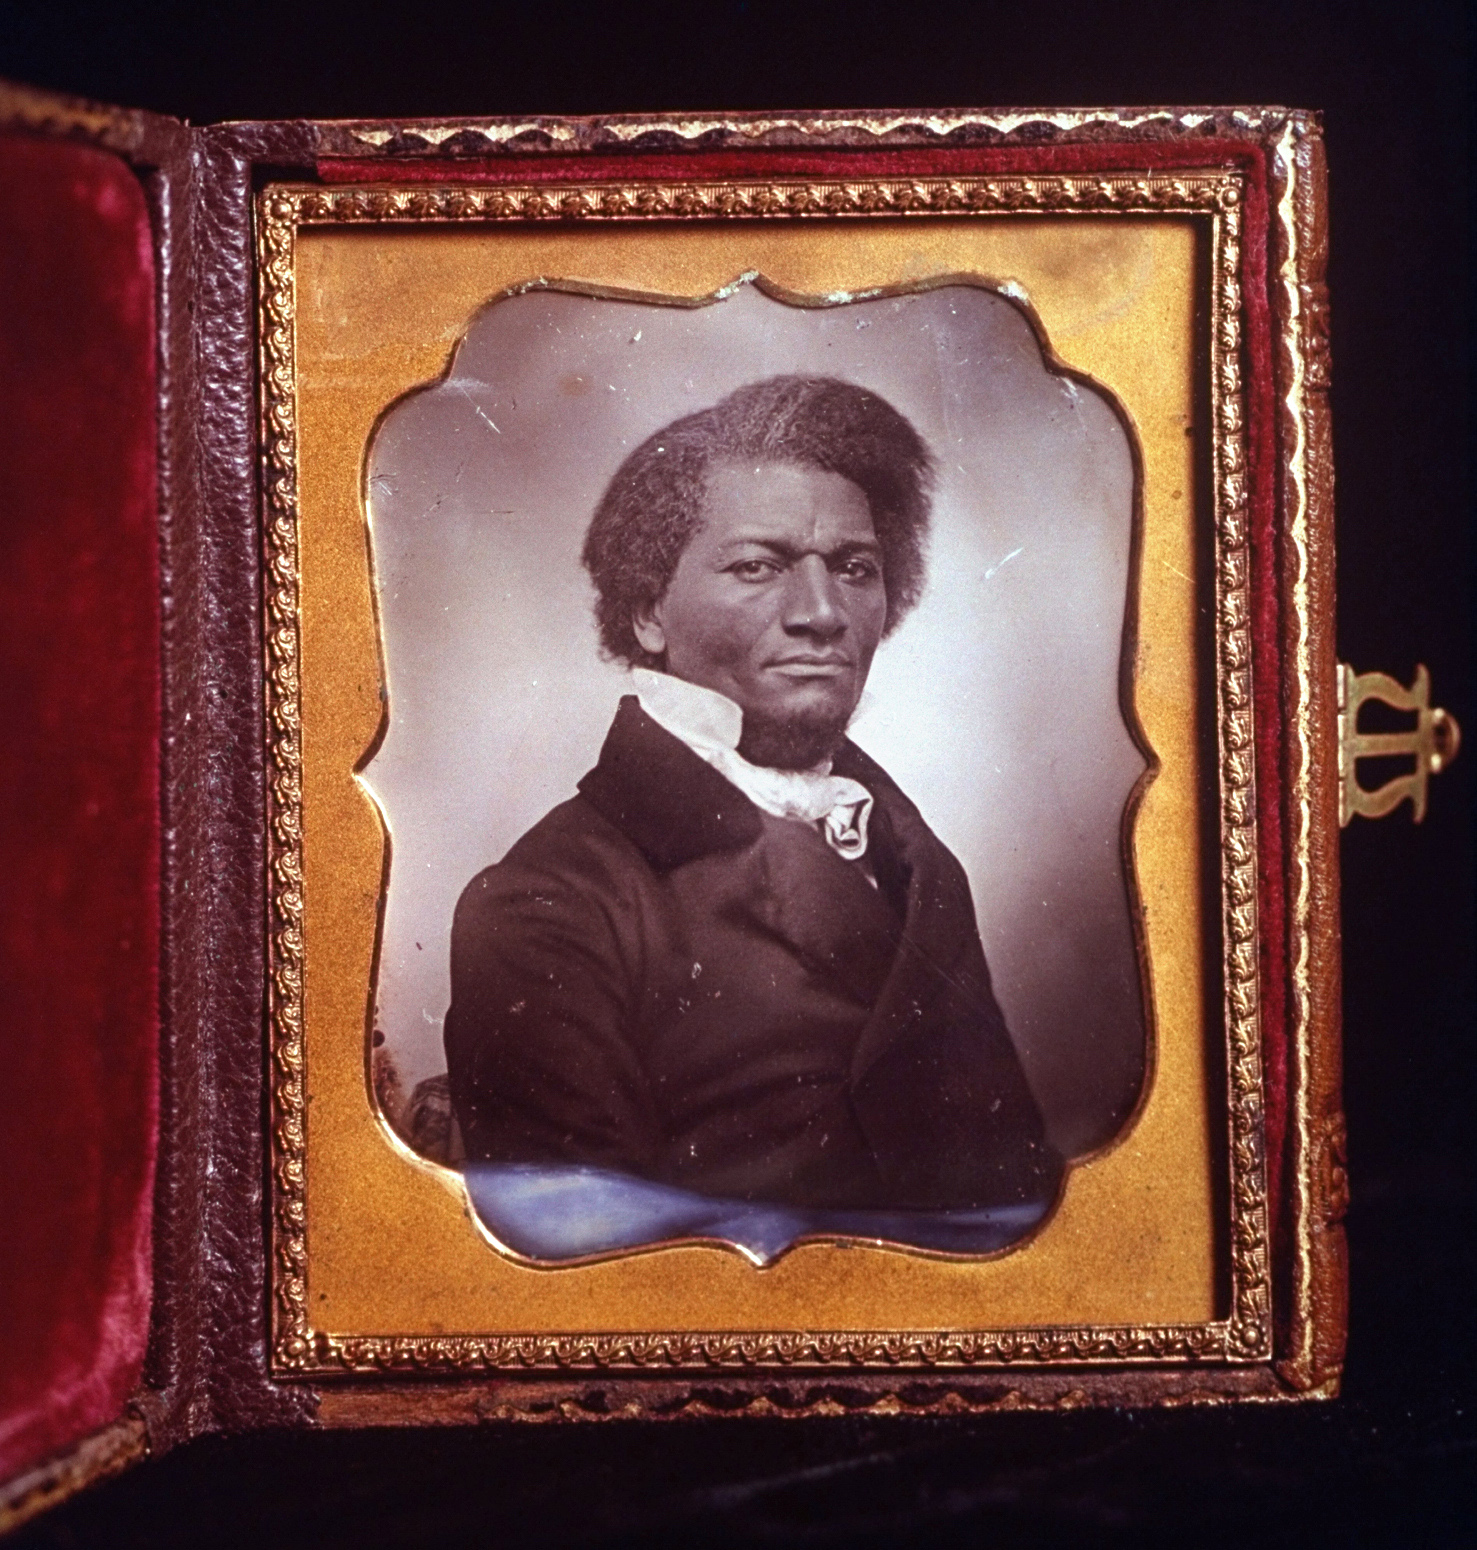 Framed daguerreotype portrait of abolitionist Frederick Douglass. (Credit: J. R. Eyerman/The LIFE Picture Collection/Getty Images)